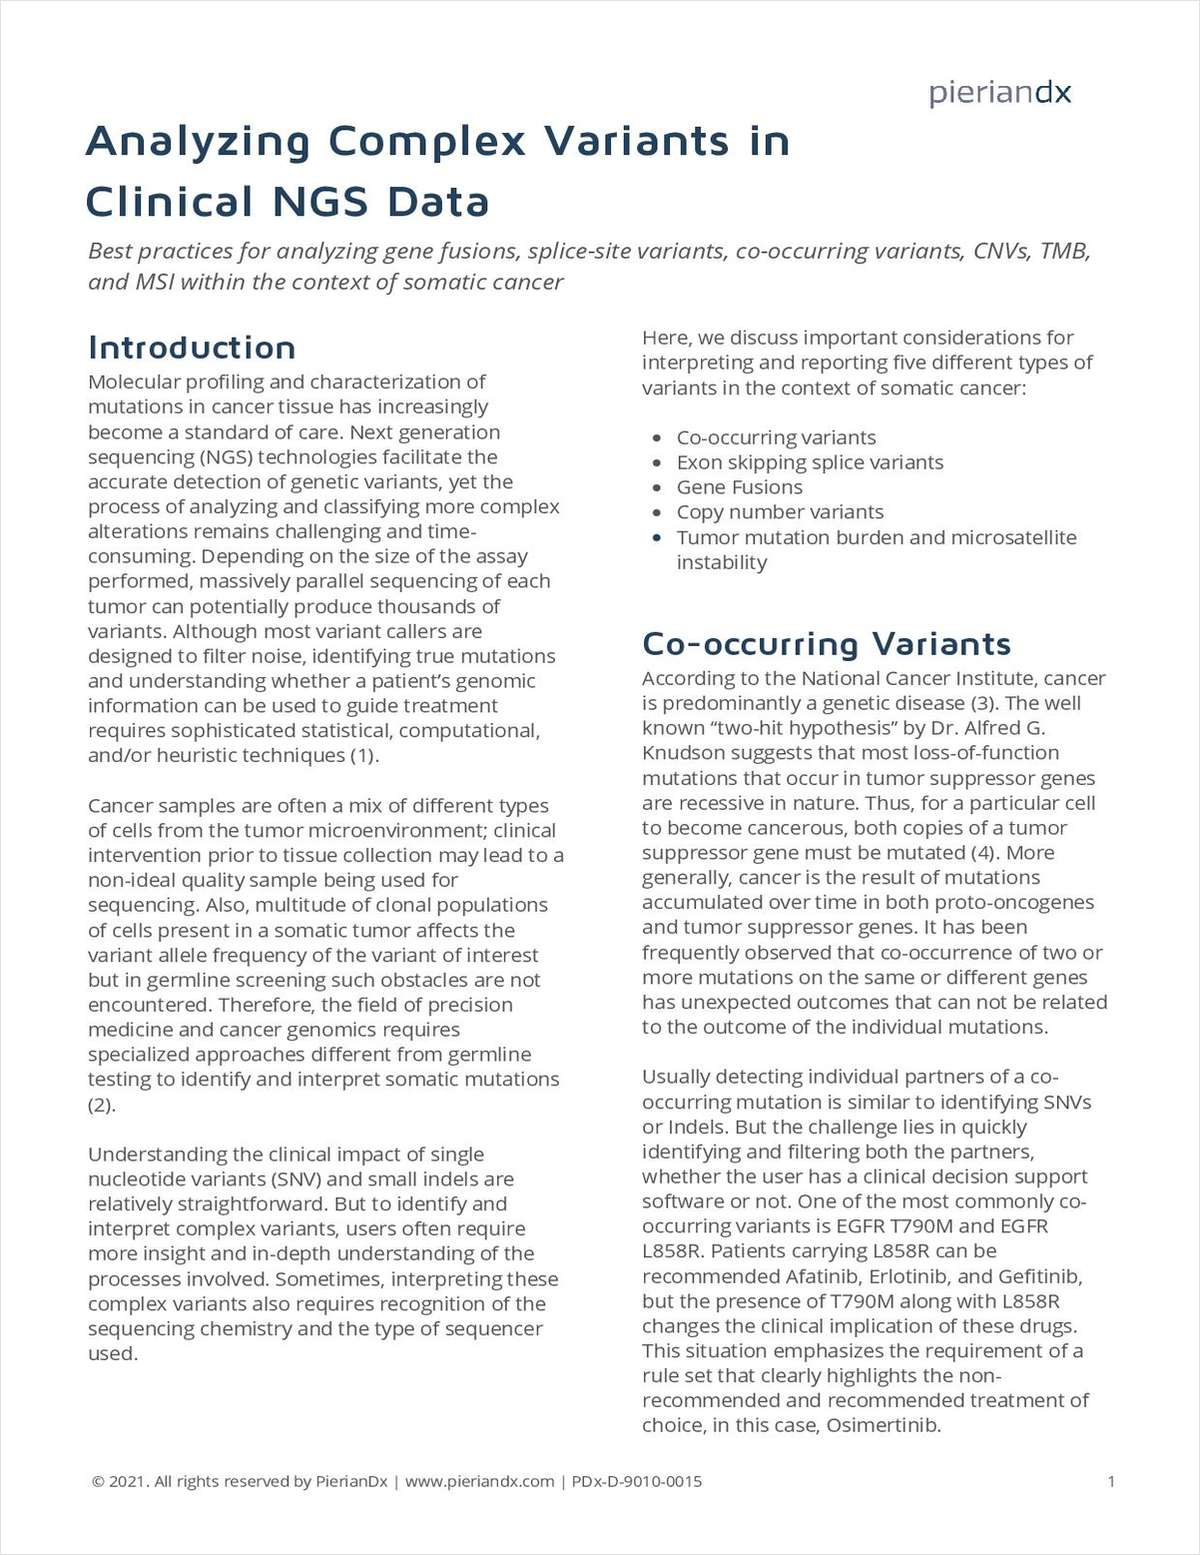 Analyzing Complex Variants in Clinical NGS Data